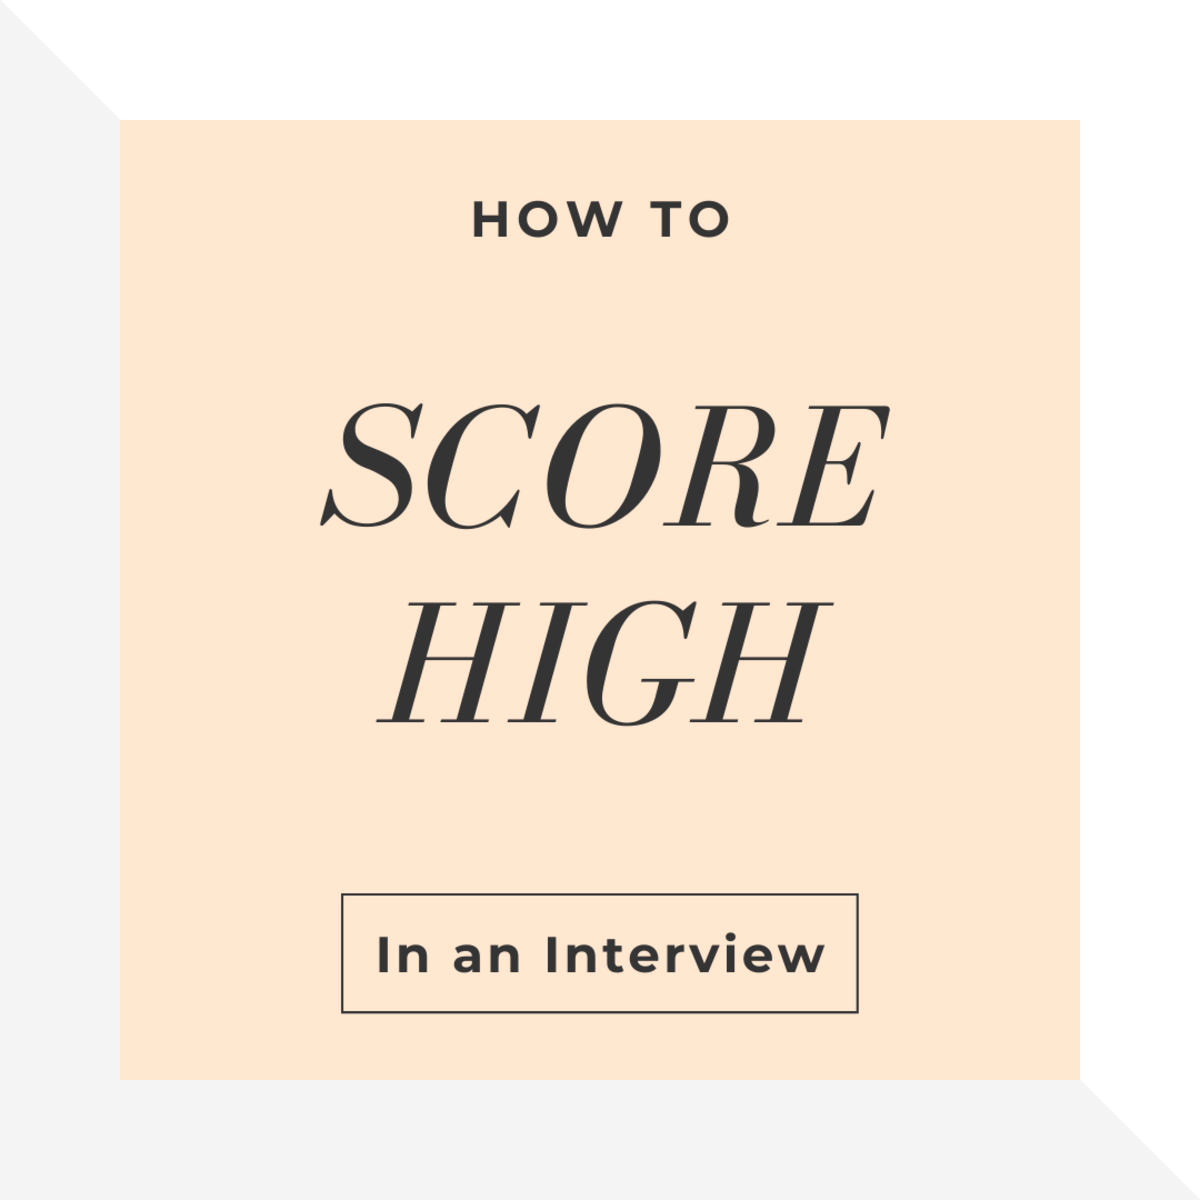 Follow these proven tips to score high on your next job interview!